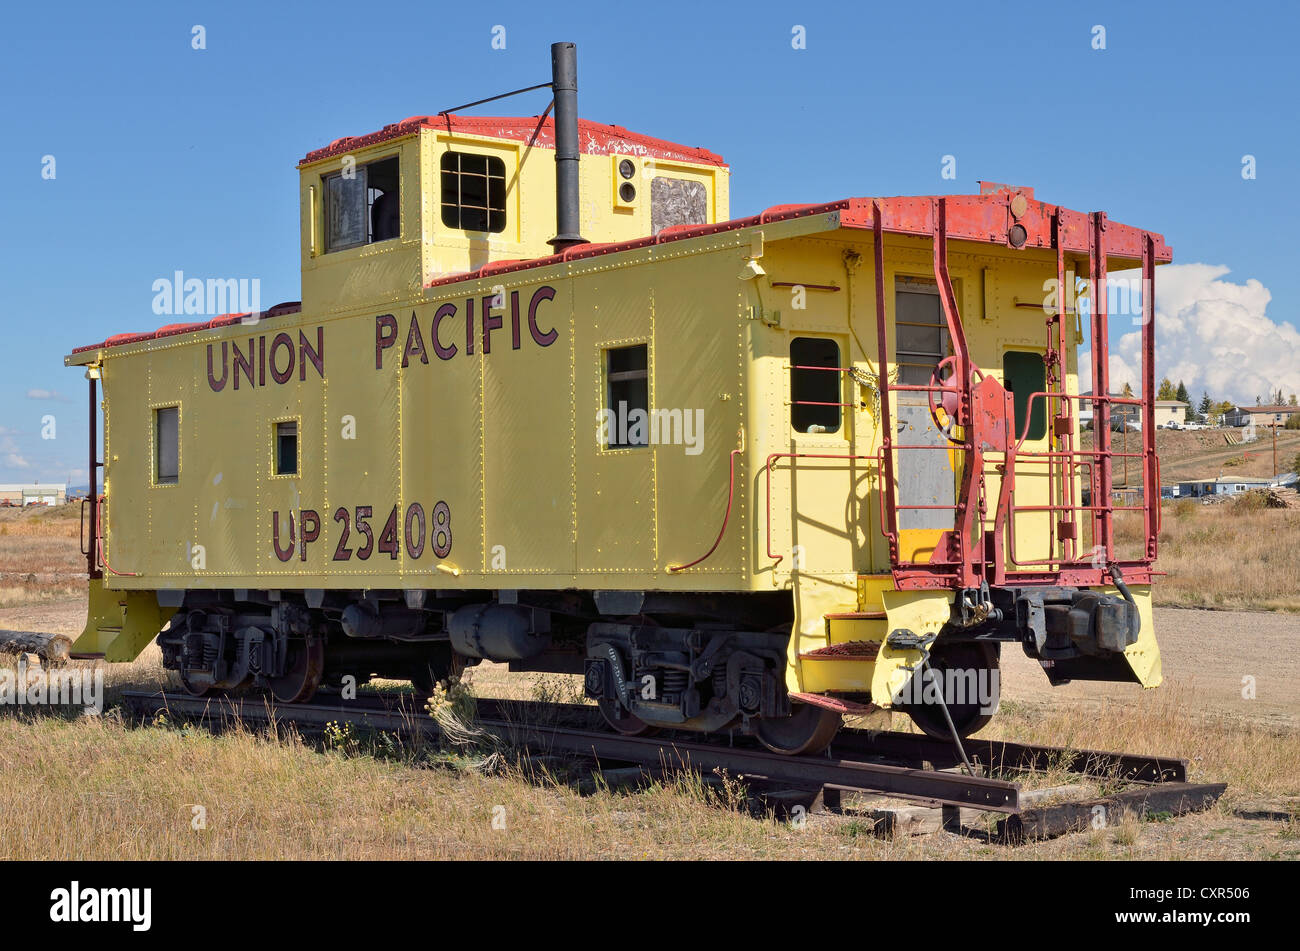 Discarded Union Pacific Railway locomotive, the largest U.S. railroad freight company, Walden, State Road 125, Colorado, - Stock Image